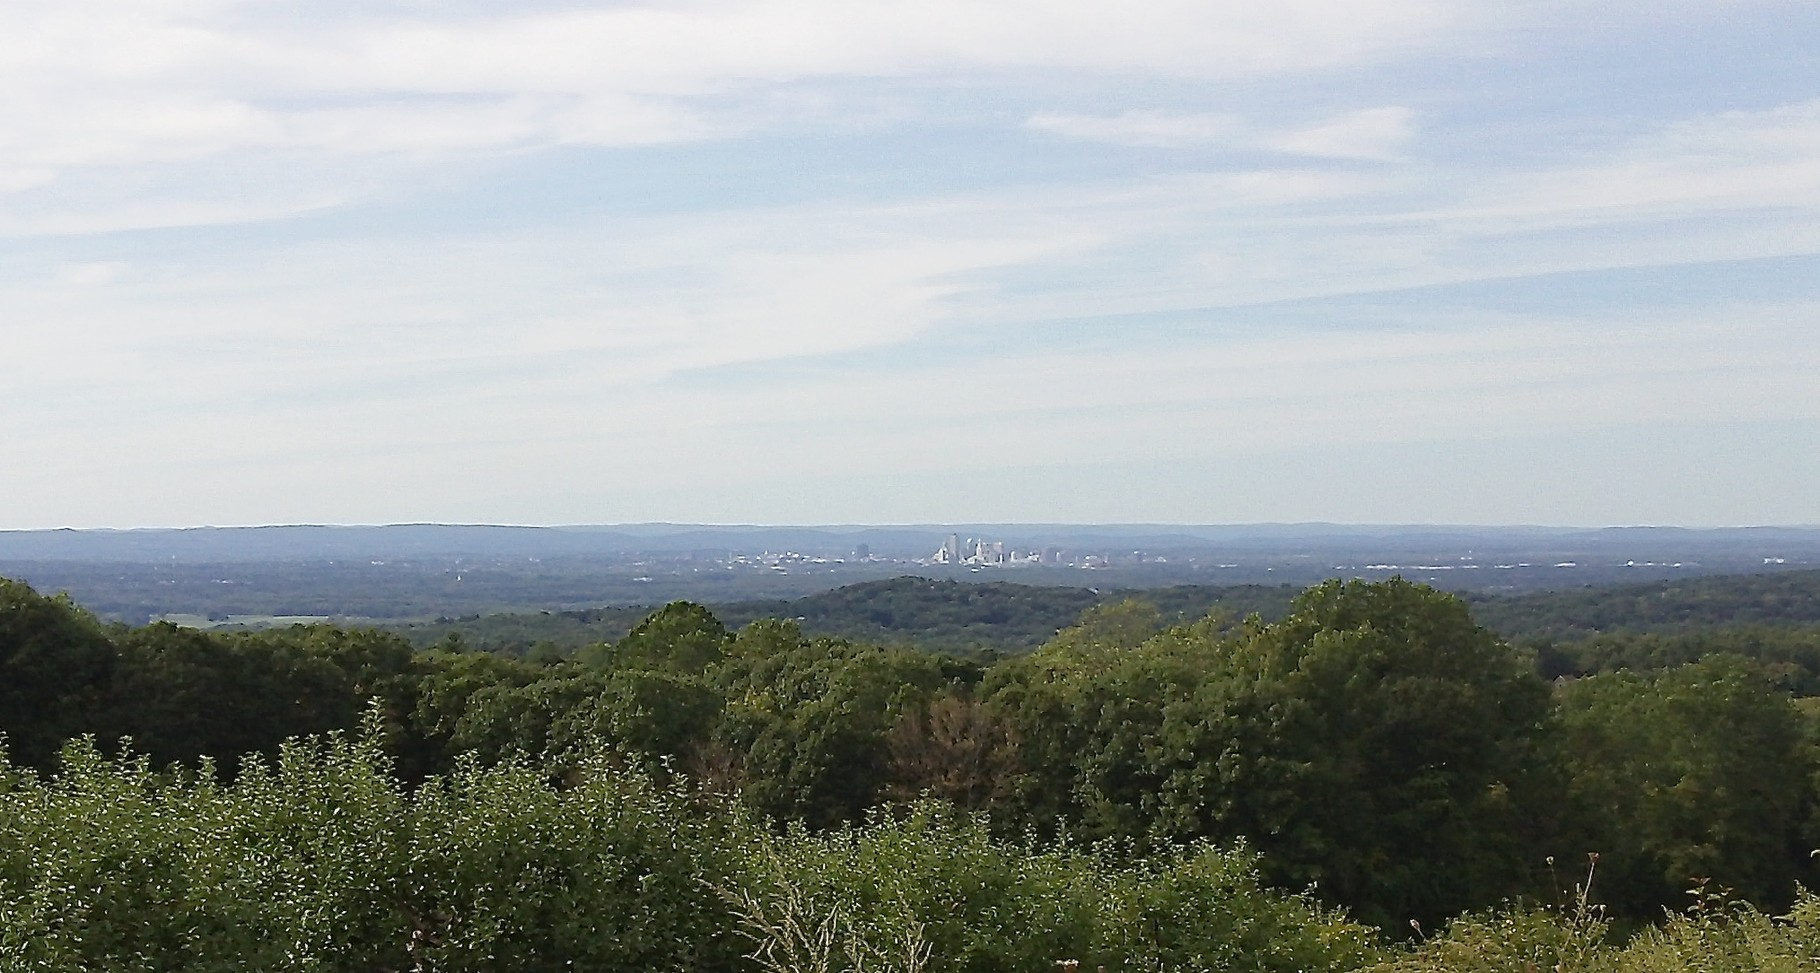 Hartford in the distance